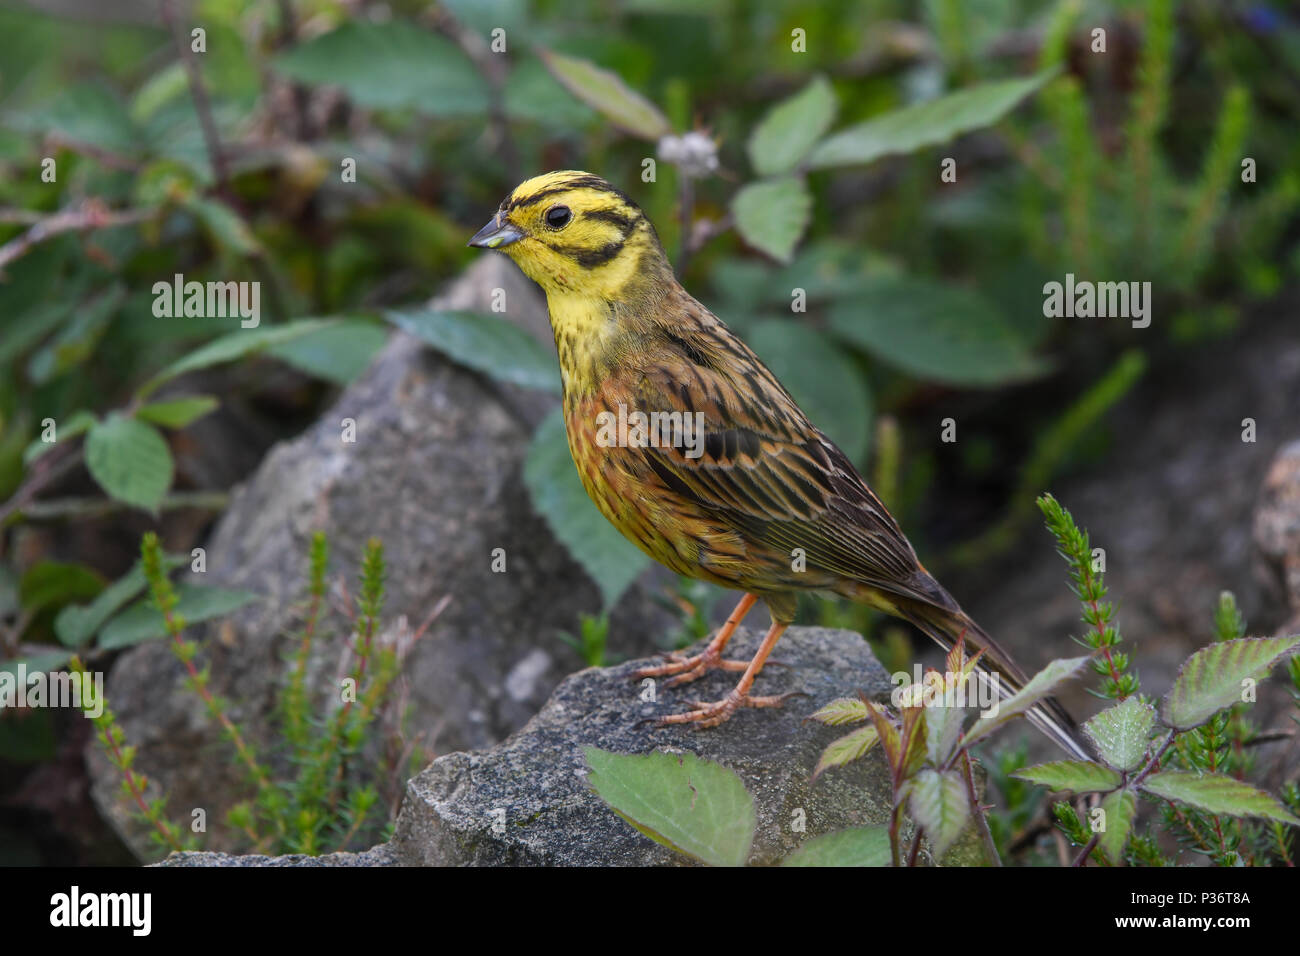 Close-up of yellowhammer perched on a stone Stock Photo